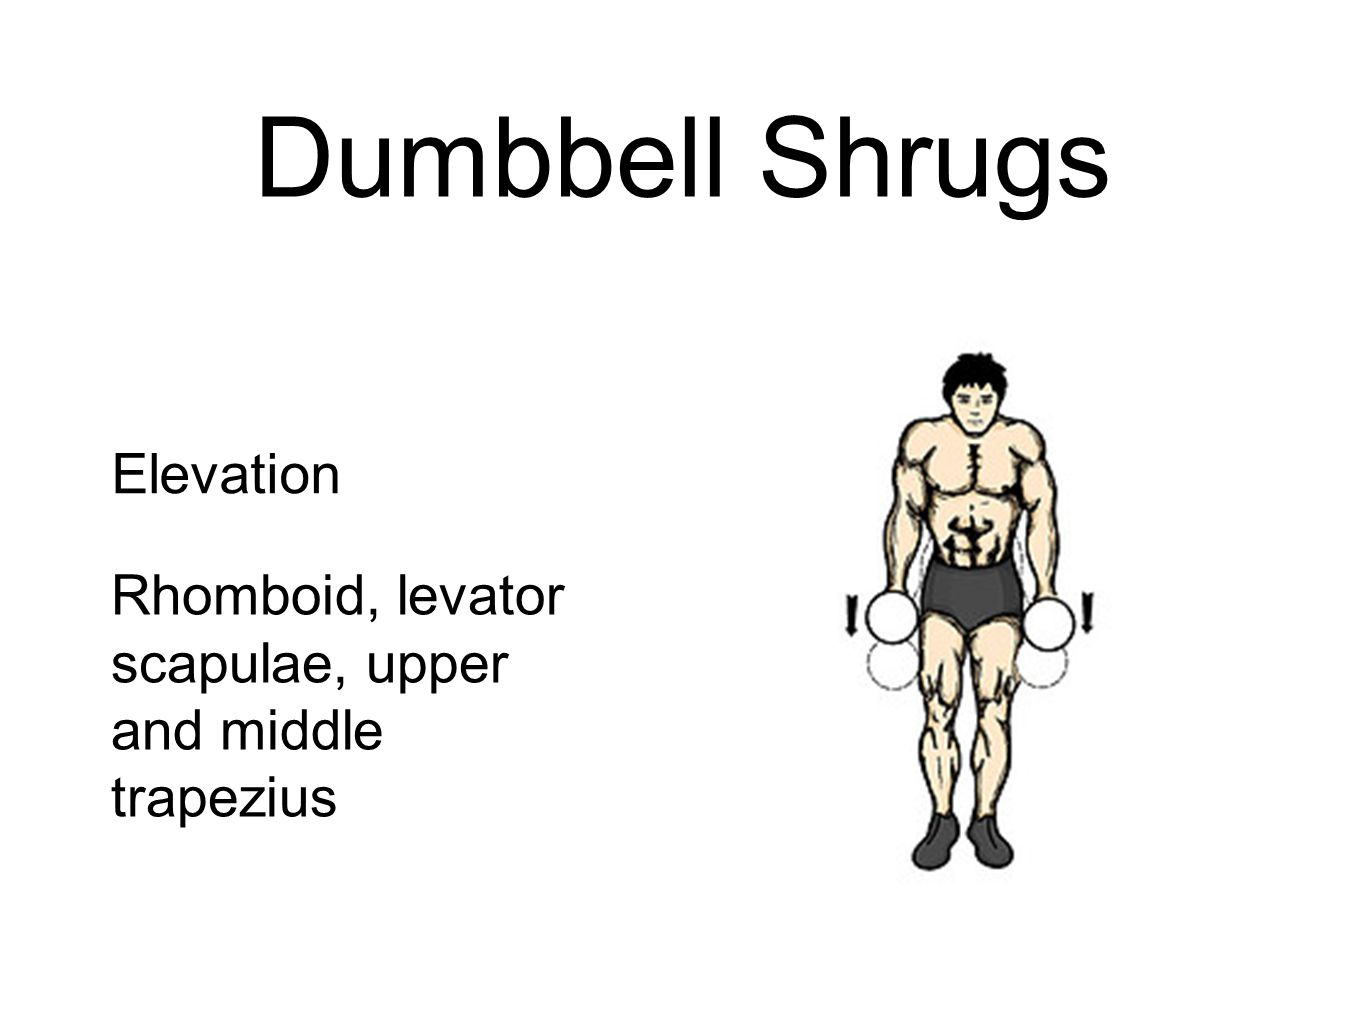 Dumbbell Shrugs Elevation Rhomboid, levator scapulae, upper and middle trapezius